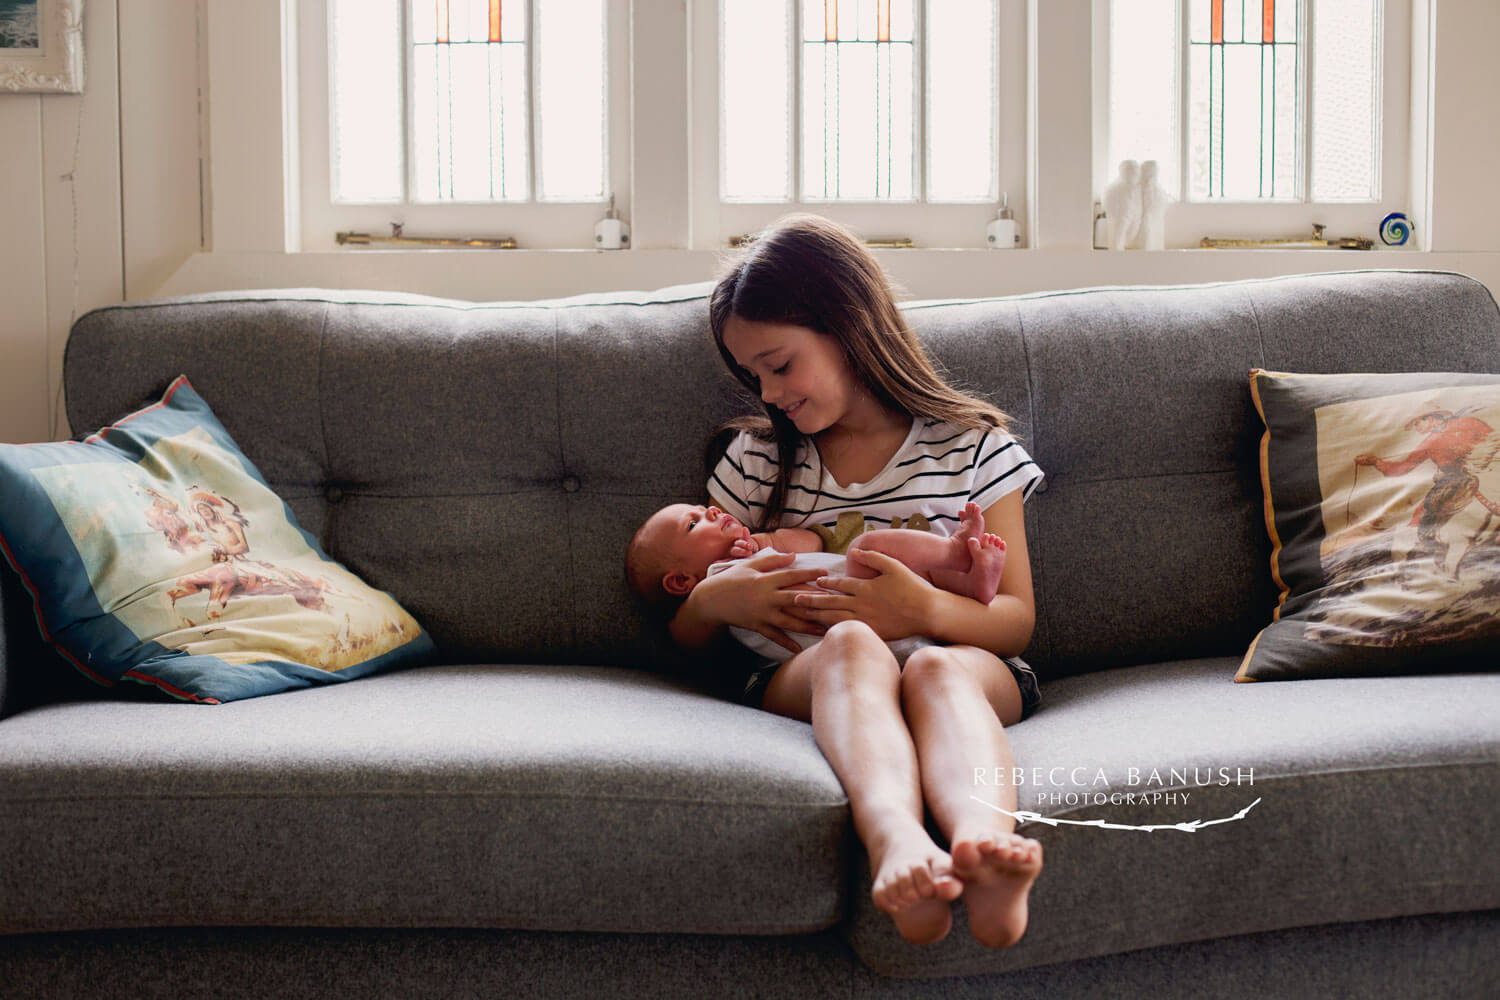 Sister holding her newborn baby brother in a newborn lifestyle photography shoot